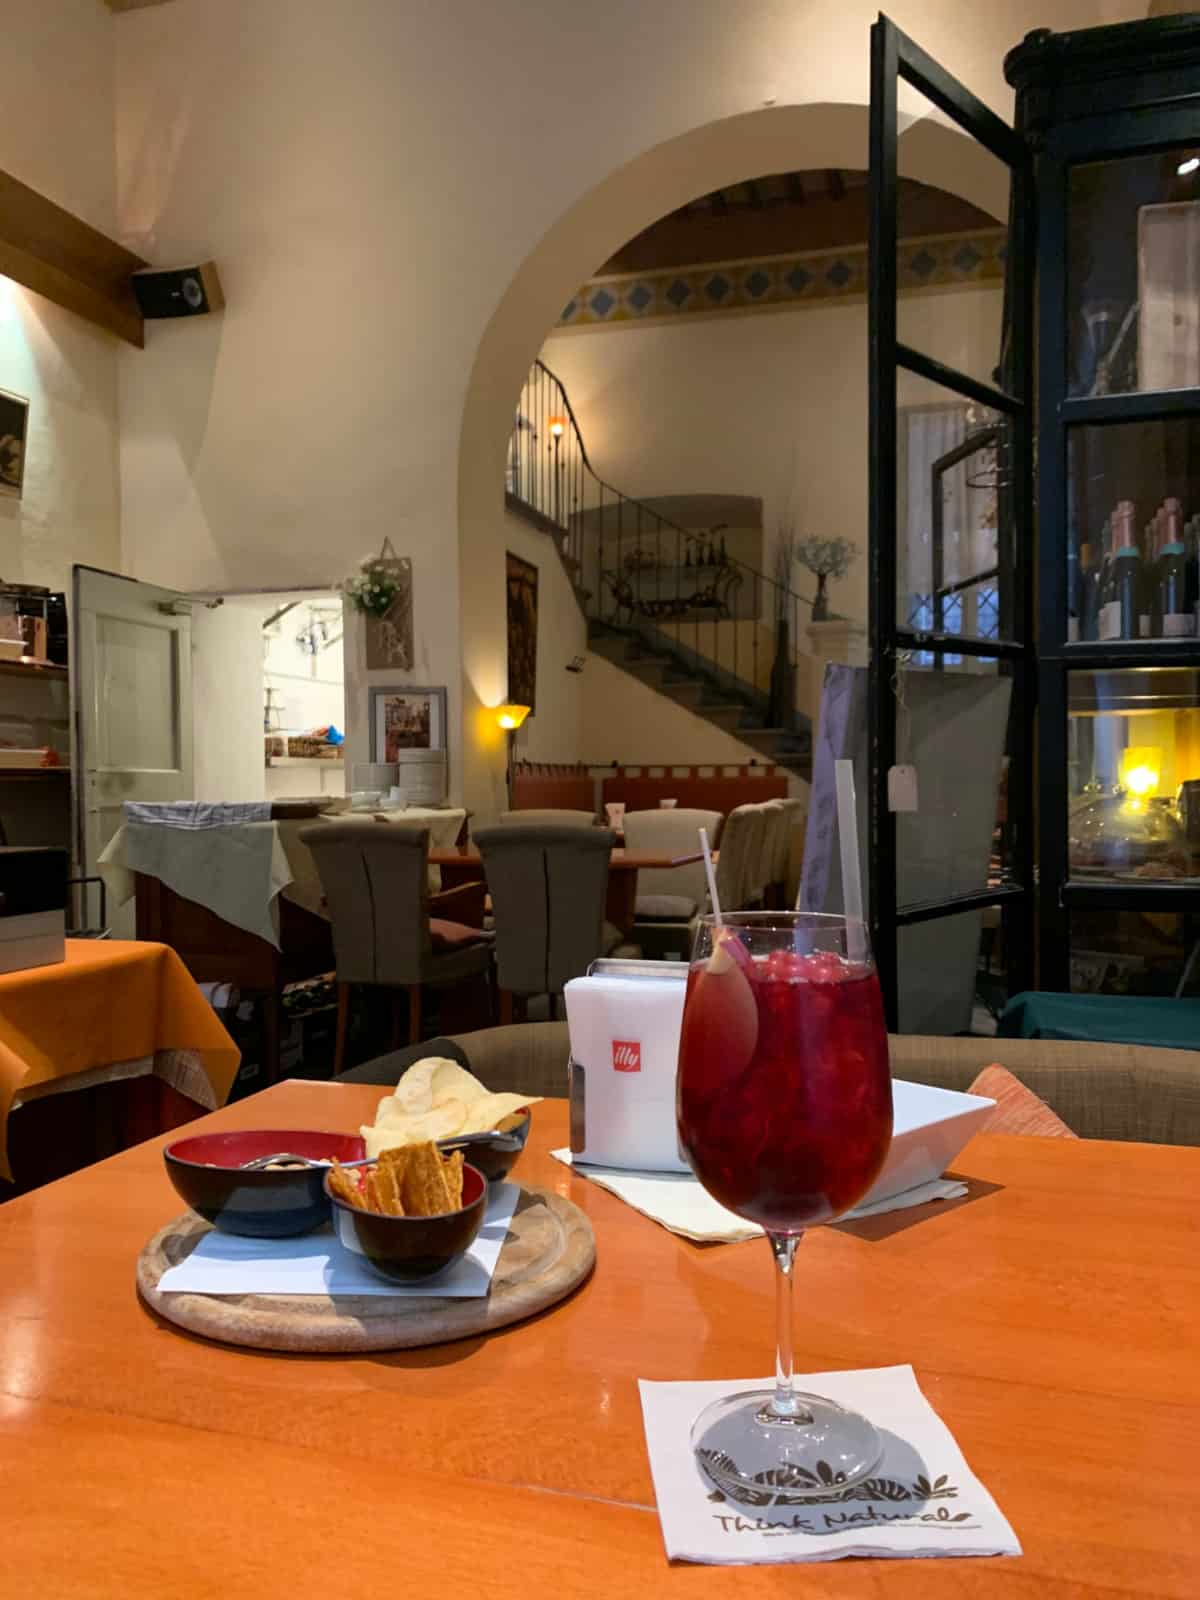 Cortona restaurants - have a sangria at Caffe Tuscher